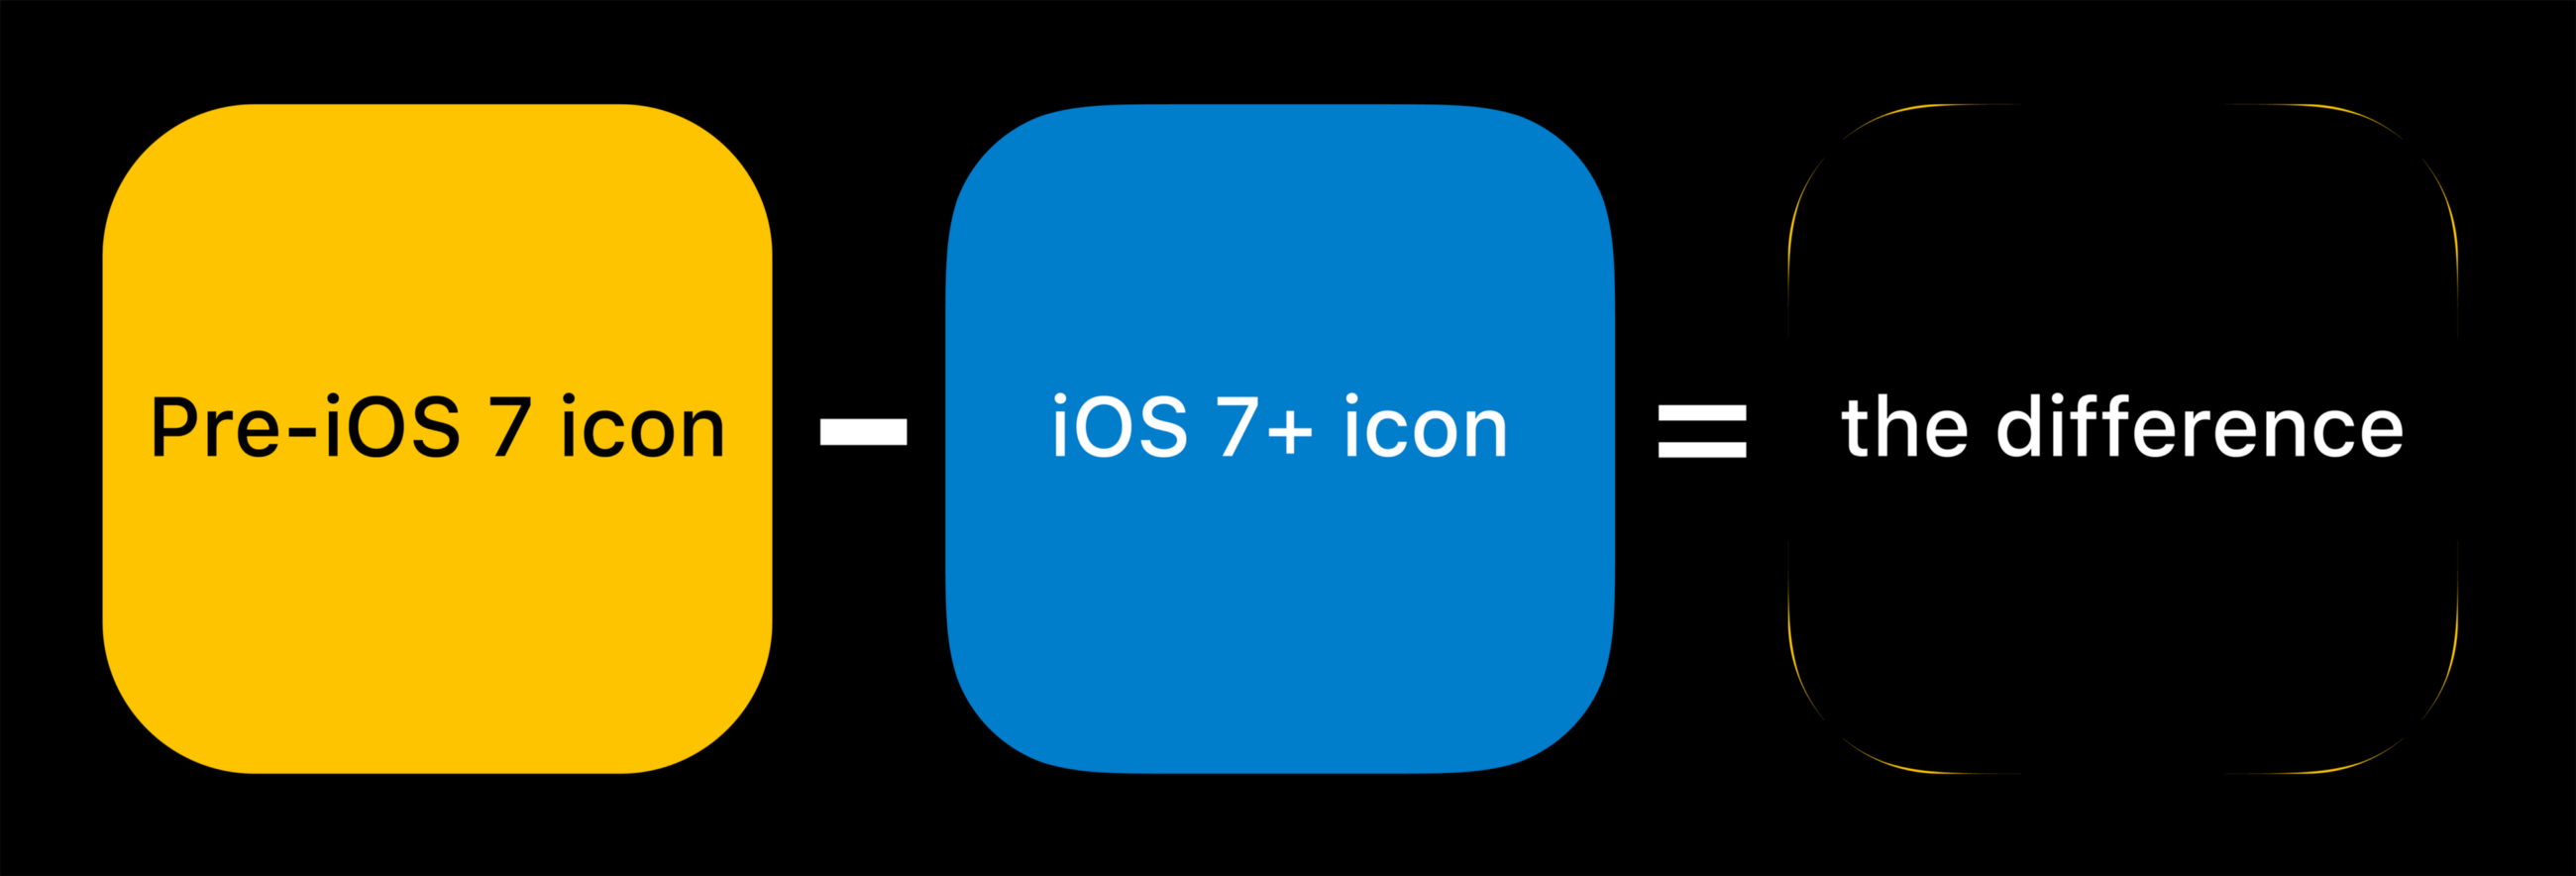 Apple's Icons Have That Shape for a Very Good Reason - By